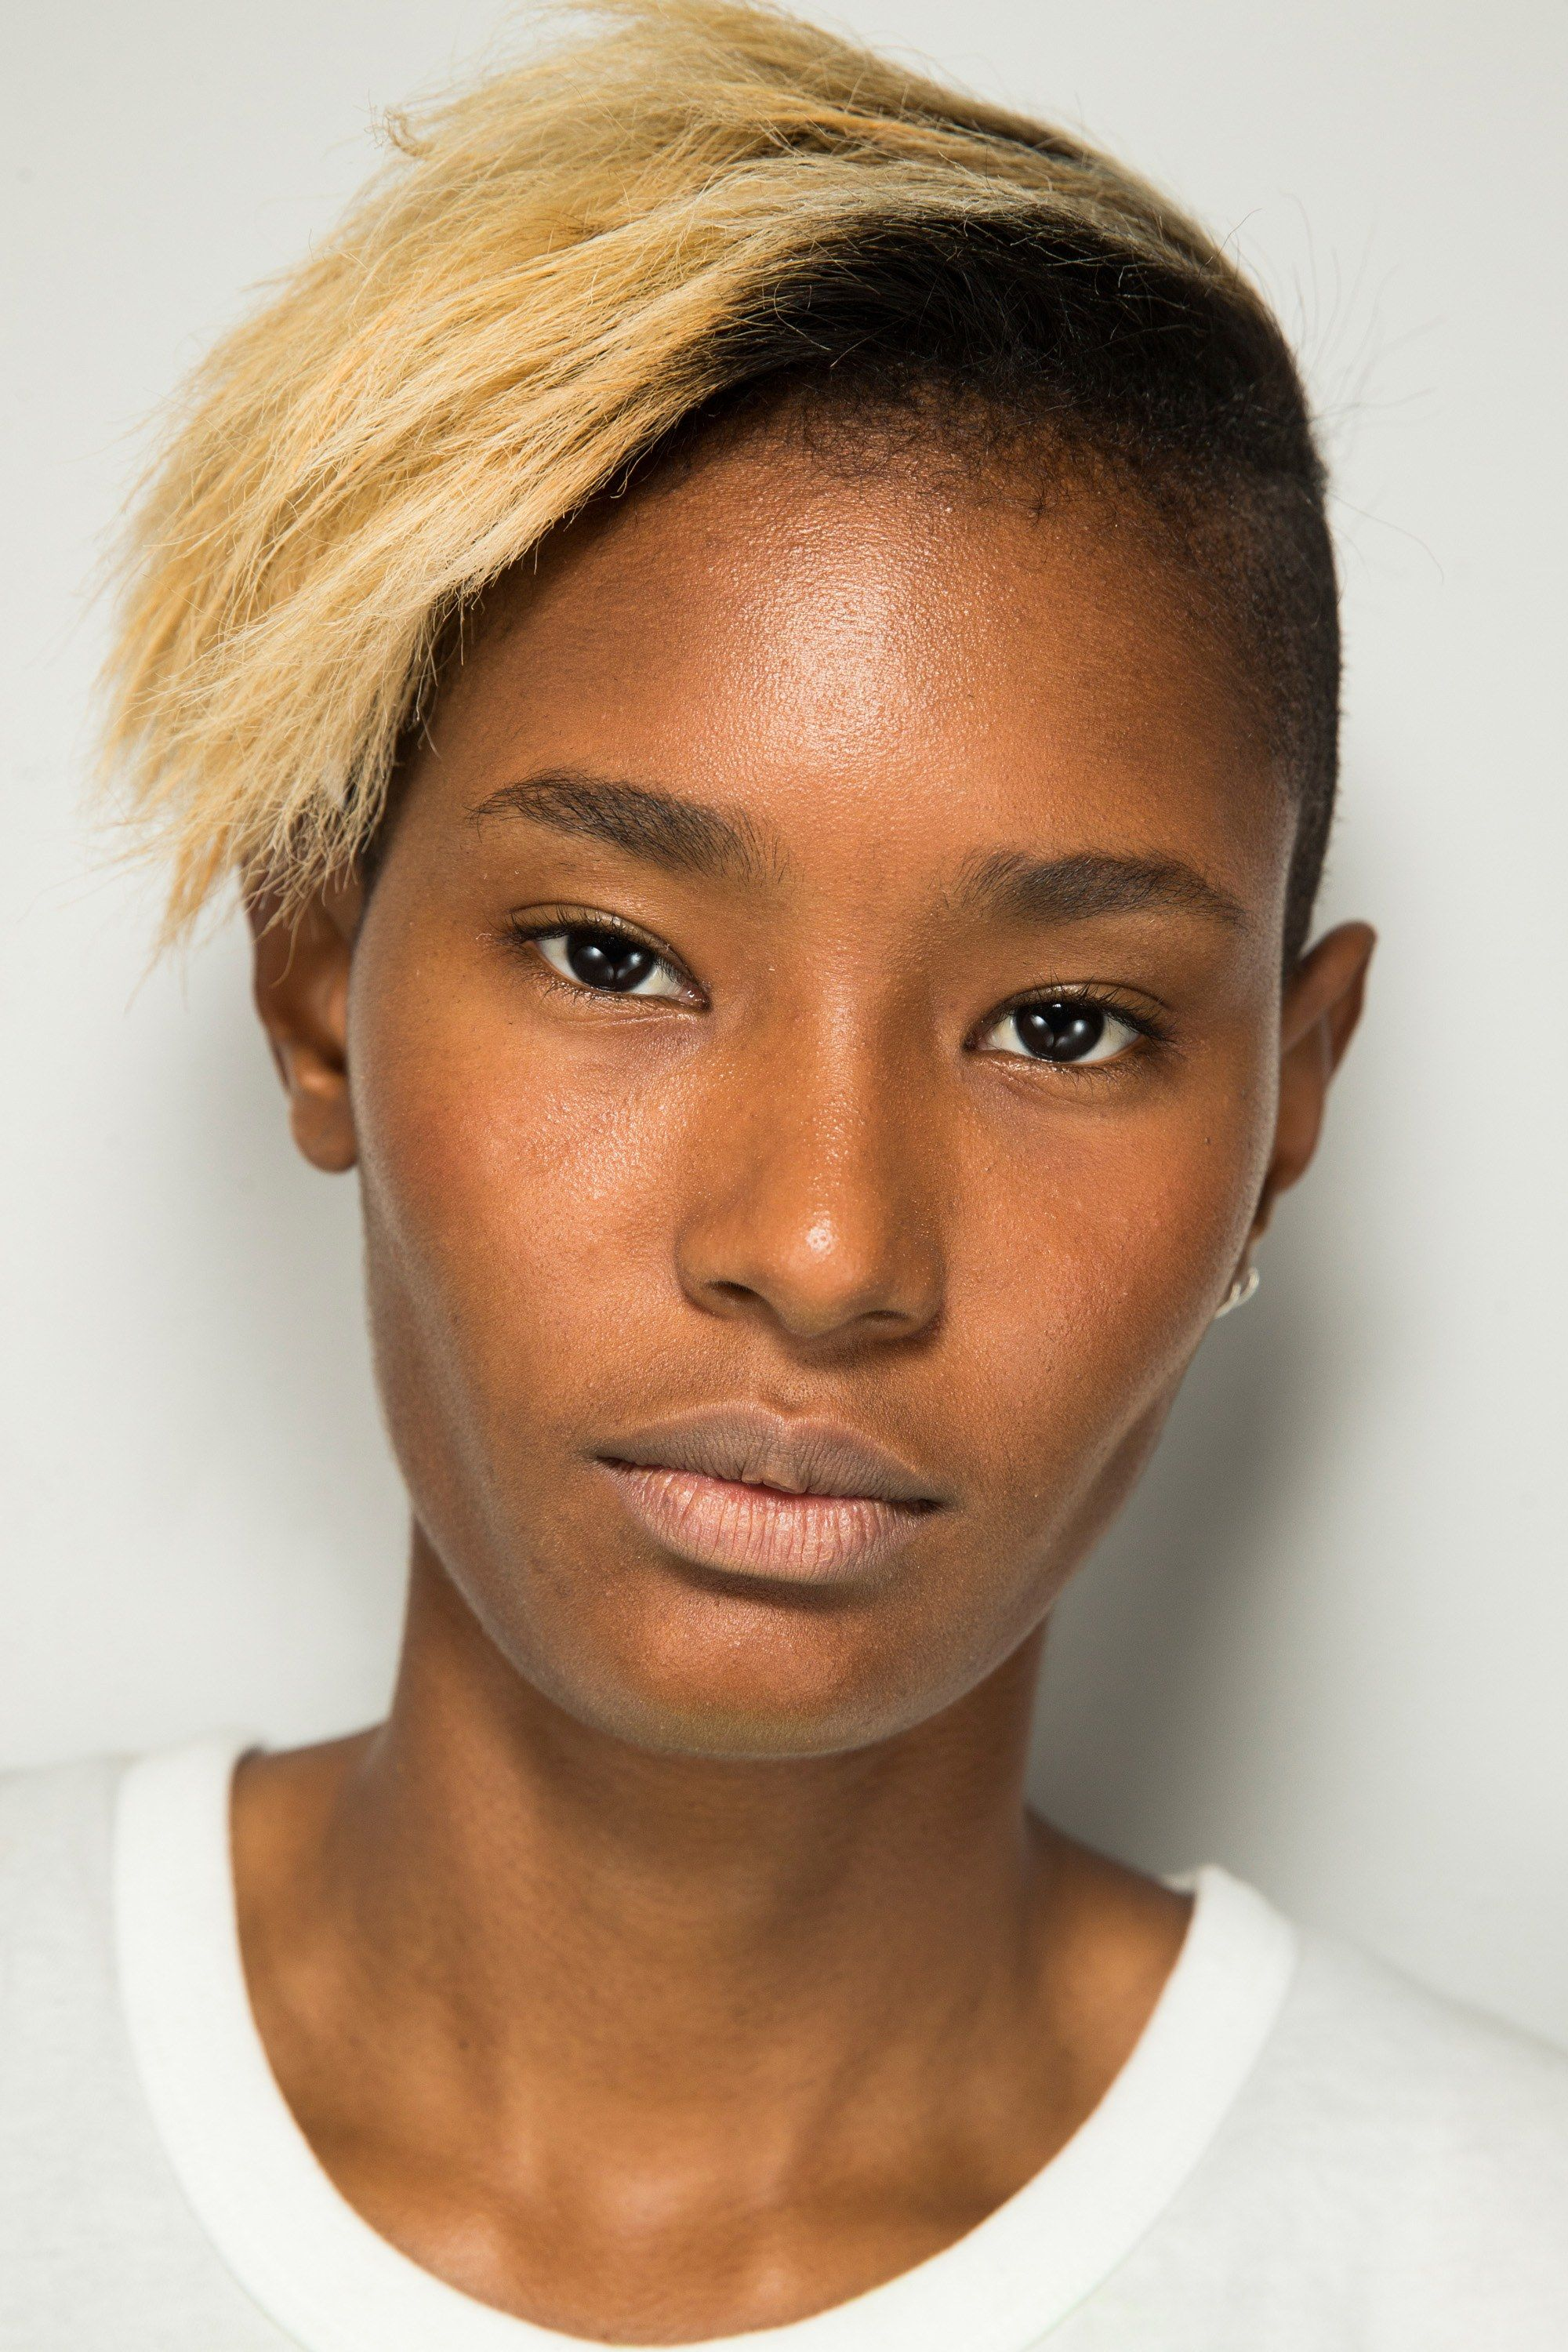 See beauty photos for Alexander Wang Spring 2017 Ready-to-Wear collection.